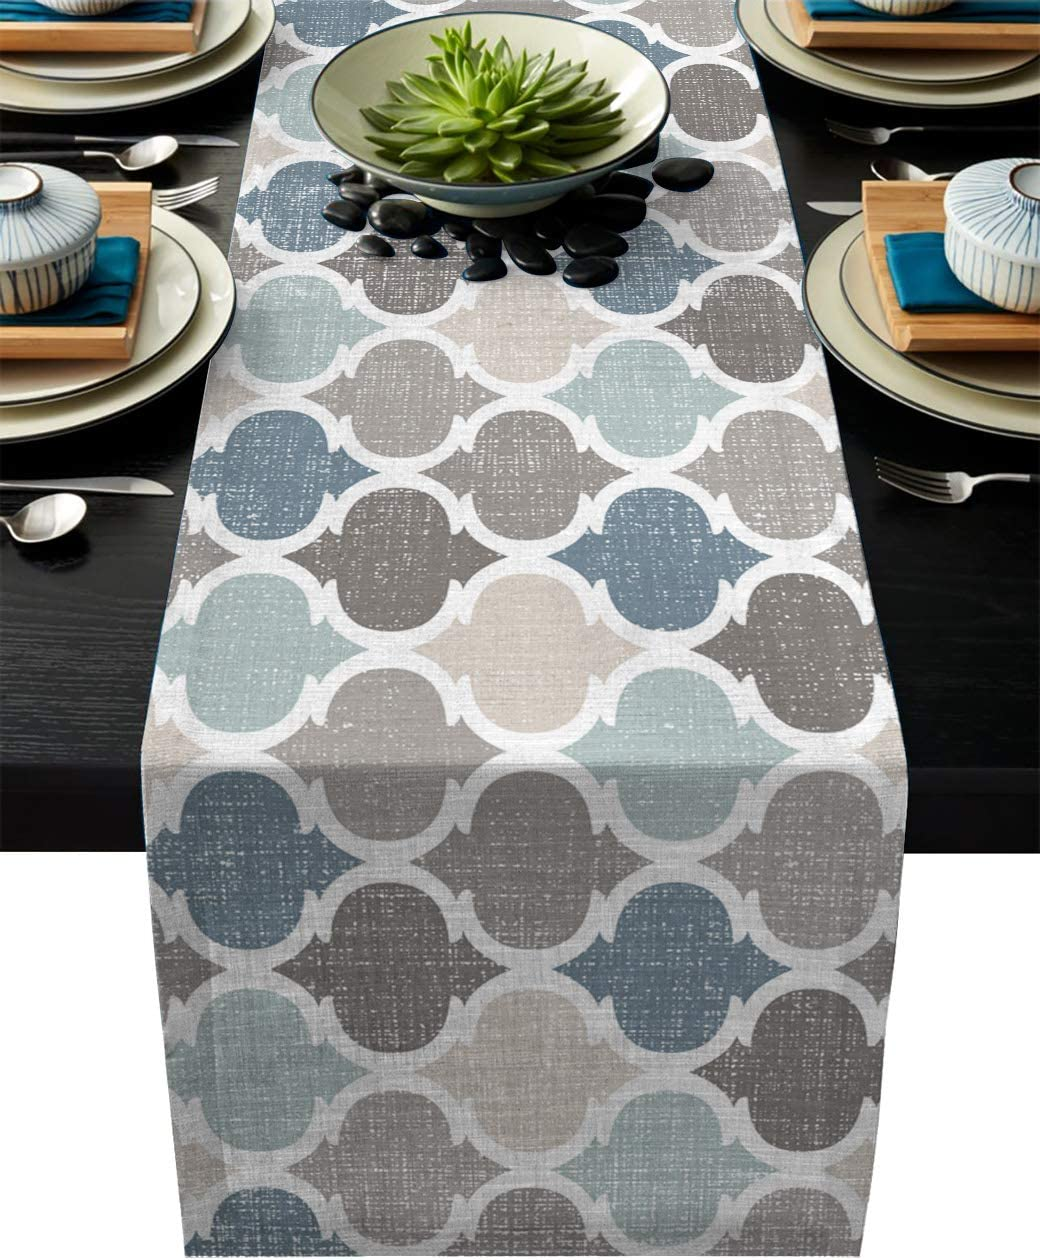 Cotton Linen Table Runner Dresser Scarves Morocco LidoQuatrefoil Geometric Pattern Non-Slip Burlap Rectangle Table Setting Decor for Wedding Party Holiday Dinner Home , (13X90 Inch) Blue Beige Brown